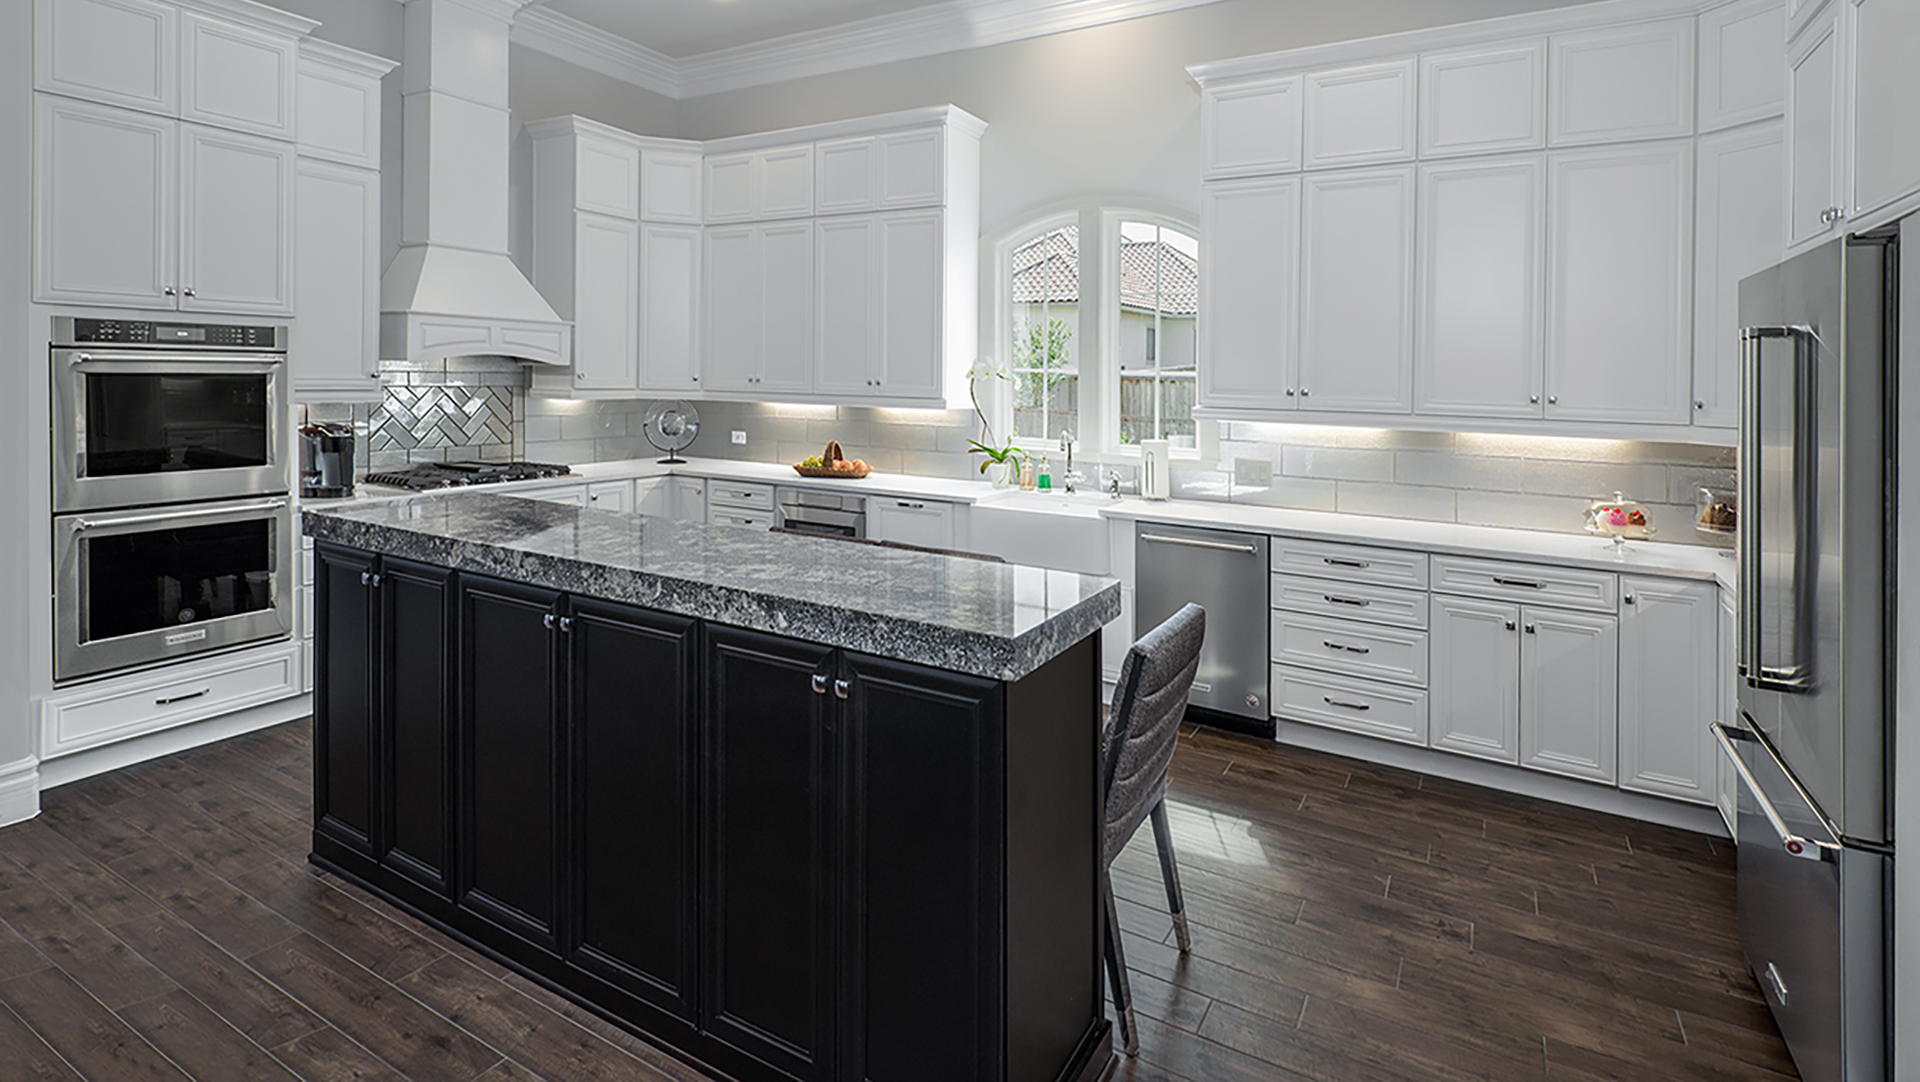 Cabinet Pro Supply The Right Way To Buy Cabinets